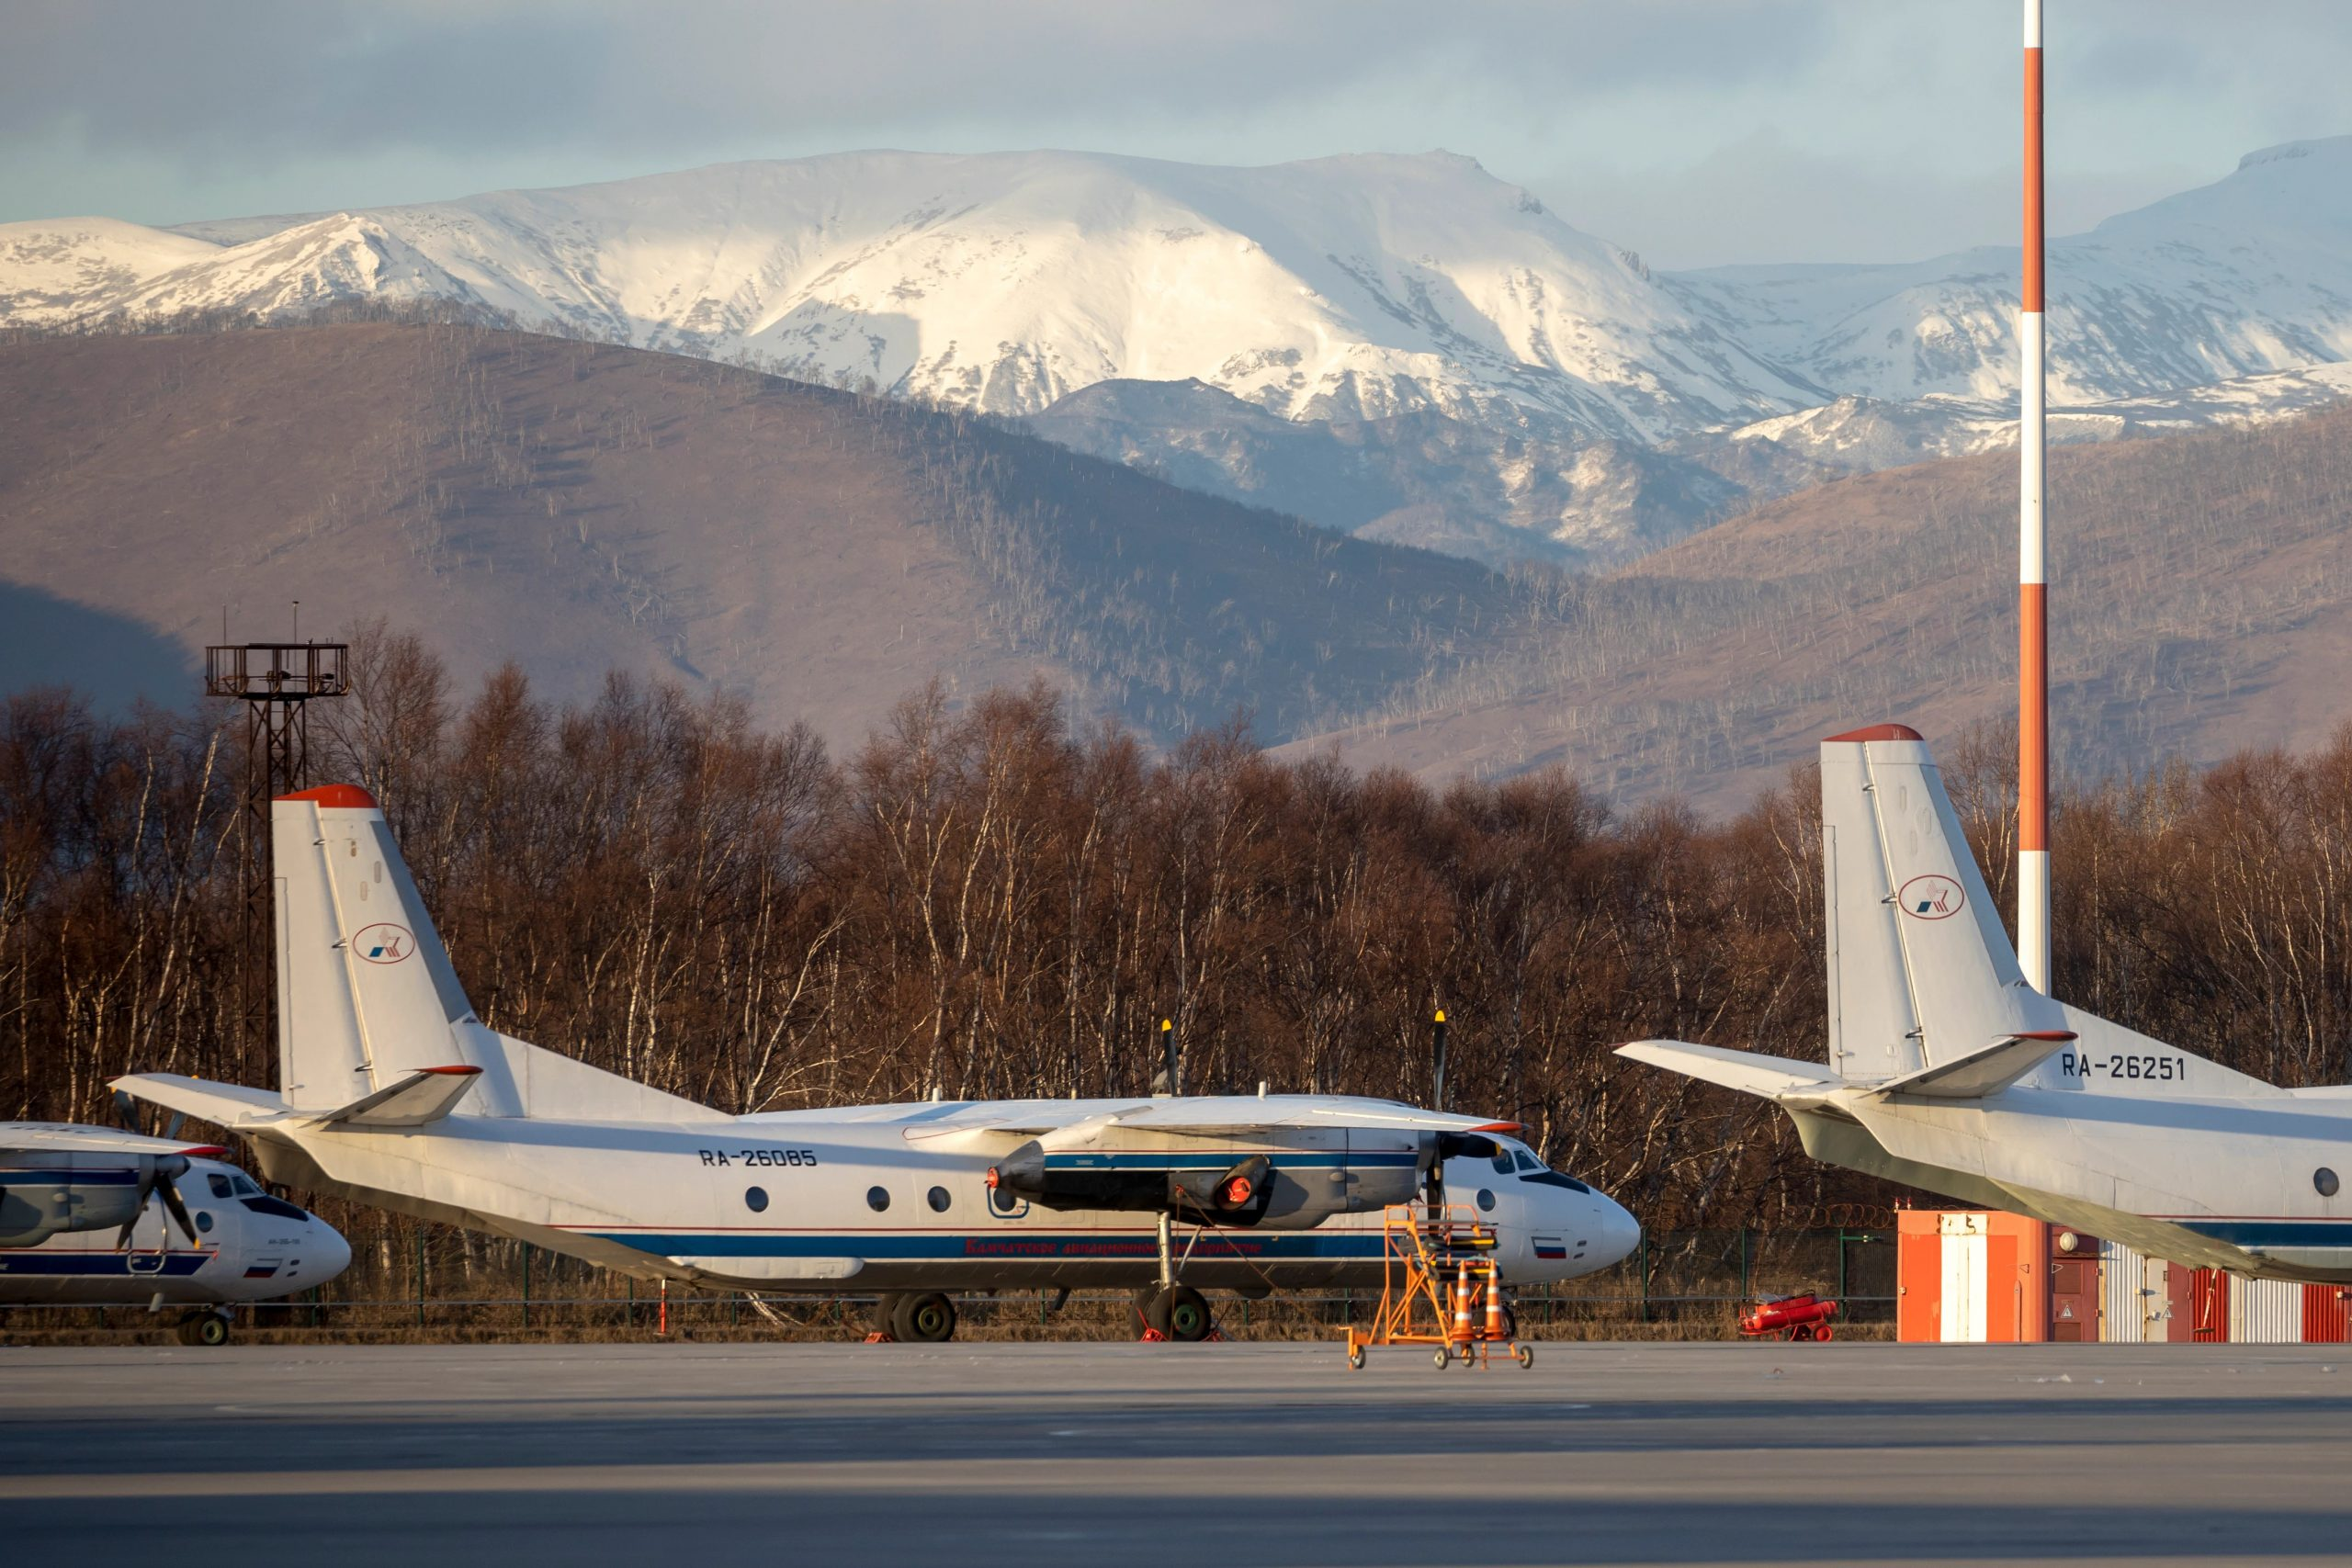 Plane with 28 People on Board Disappears from Radar in Russia's Far East